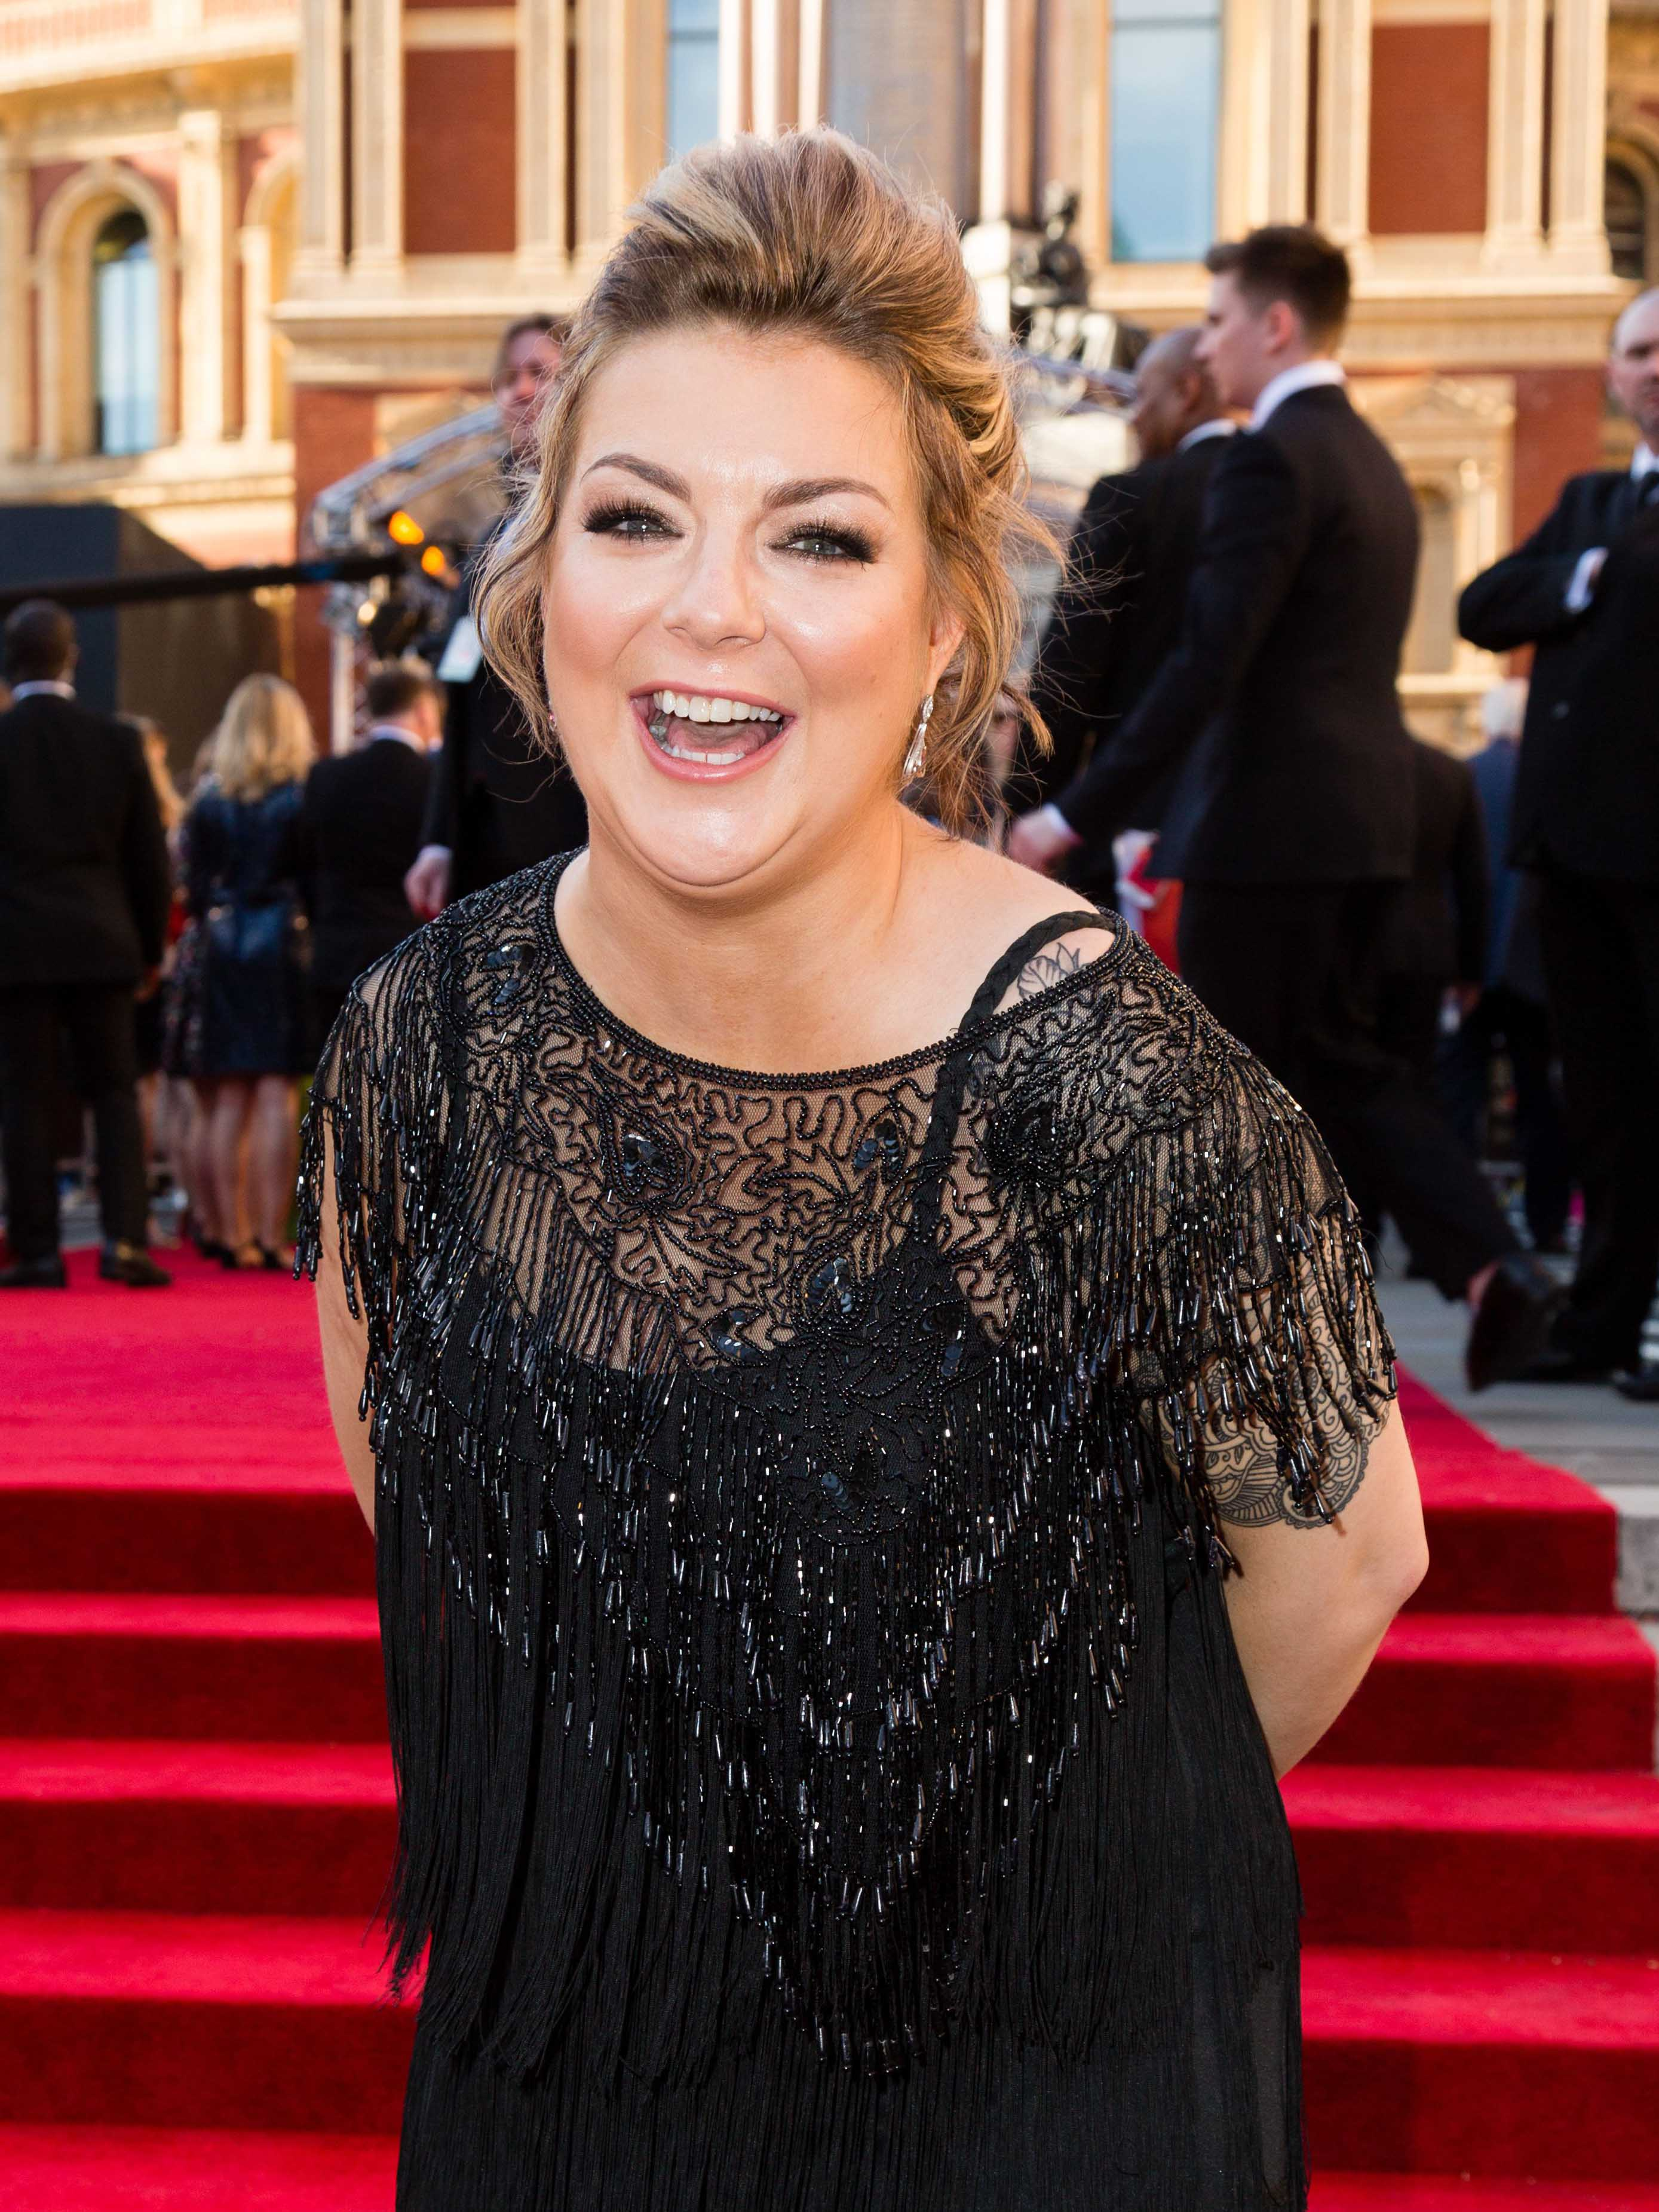 Sheridan Smith Struggling To Lose Weight After Gaining